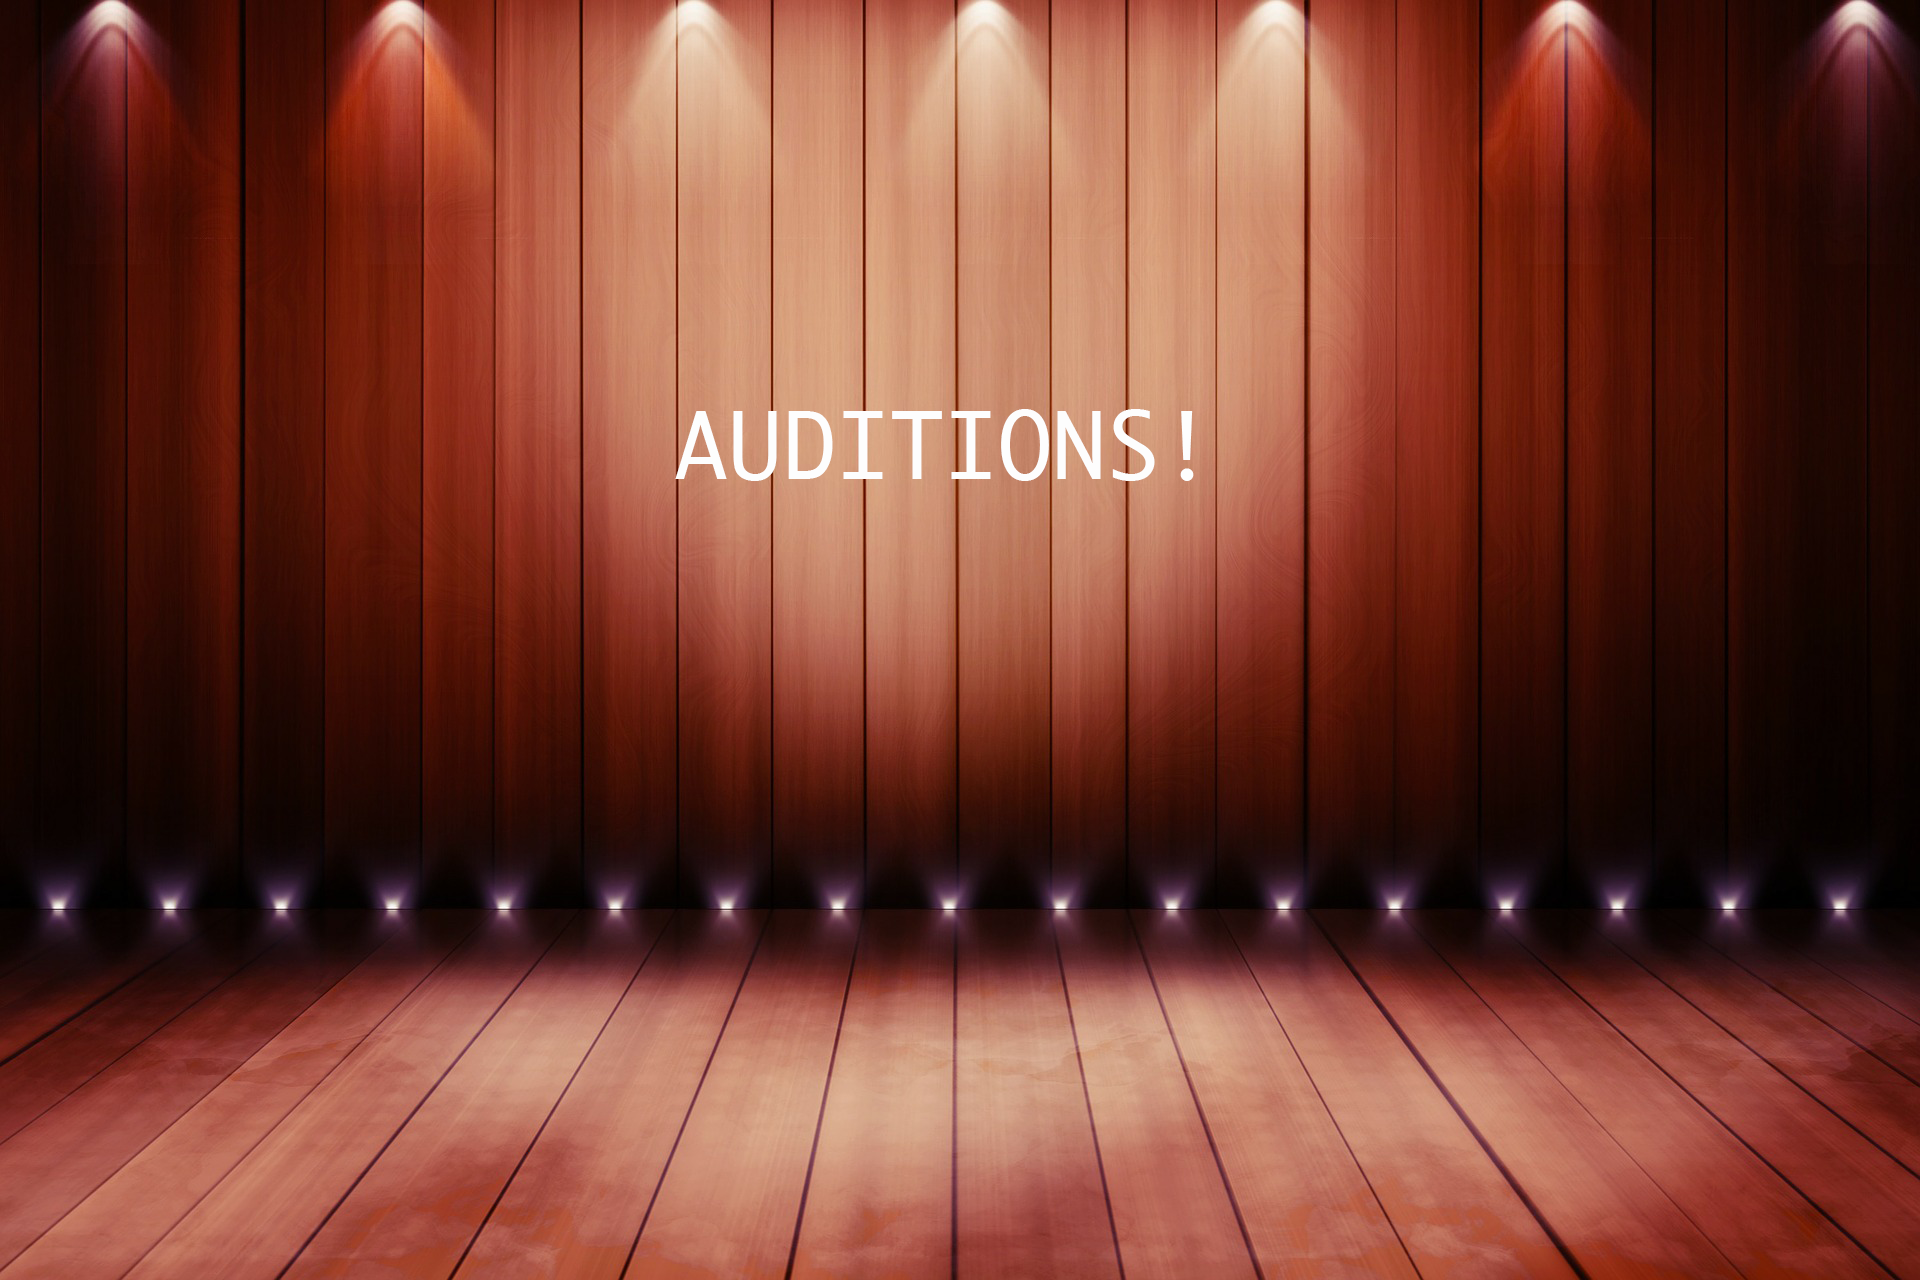 Auditions2.png